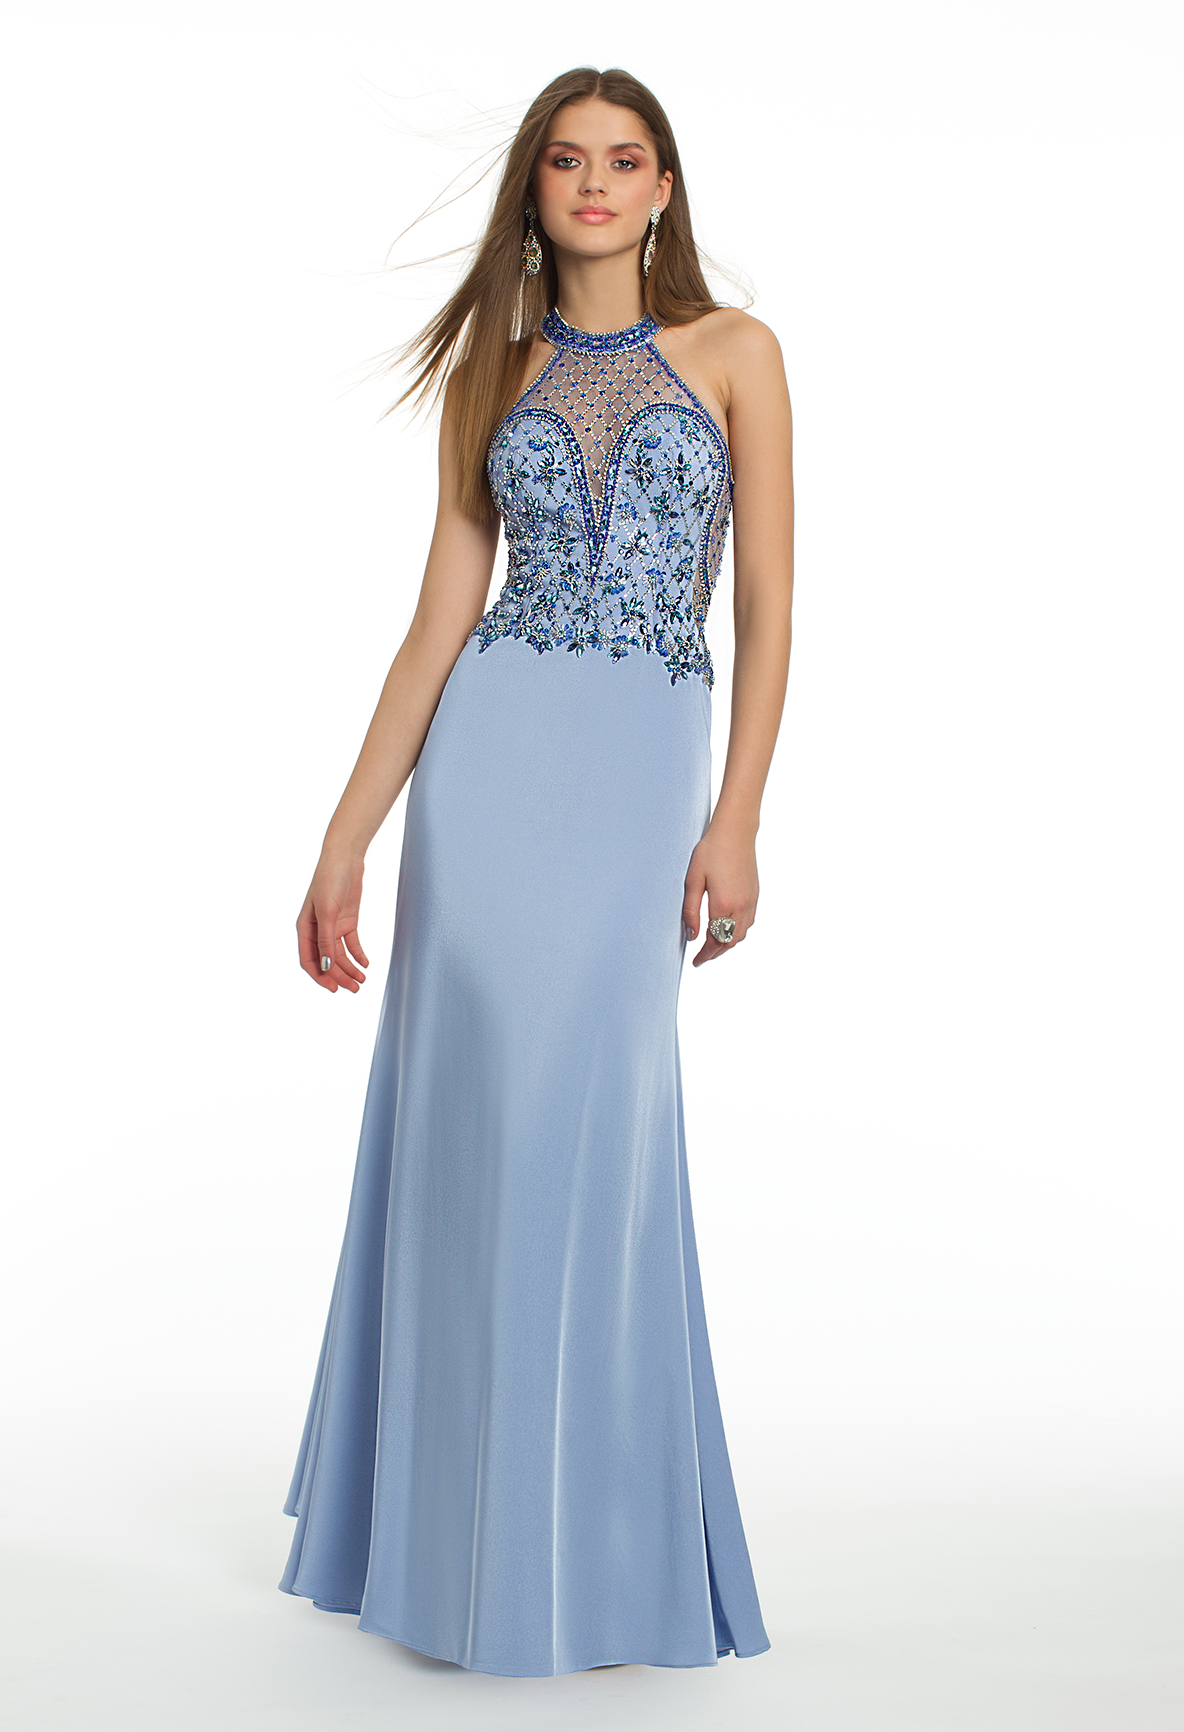 Prepare for an extravagant evening in this long prom dress the